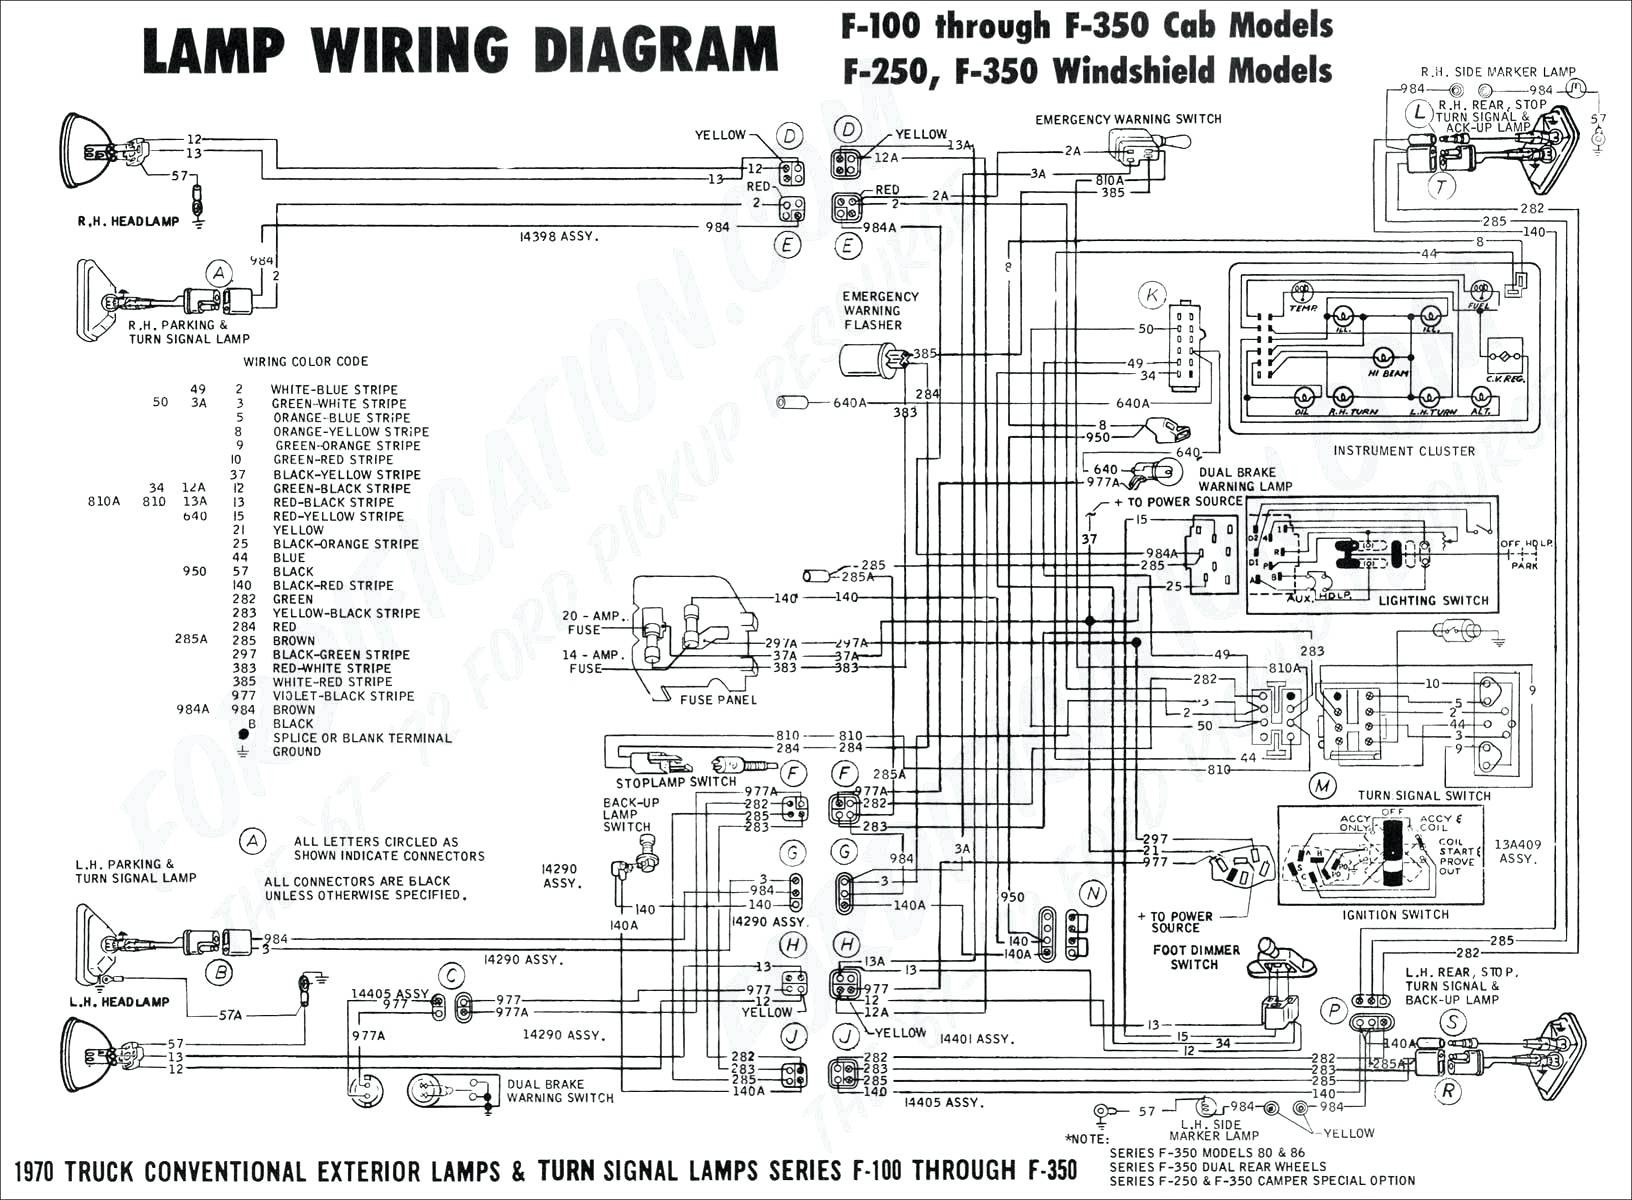 99 Honda Civic Hatchback Fuse Diagram Schematics Wiring 1997 Under Dash Box 2002 Trusted Diagrams 2000 Lx